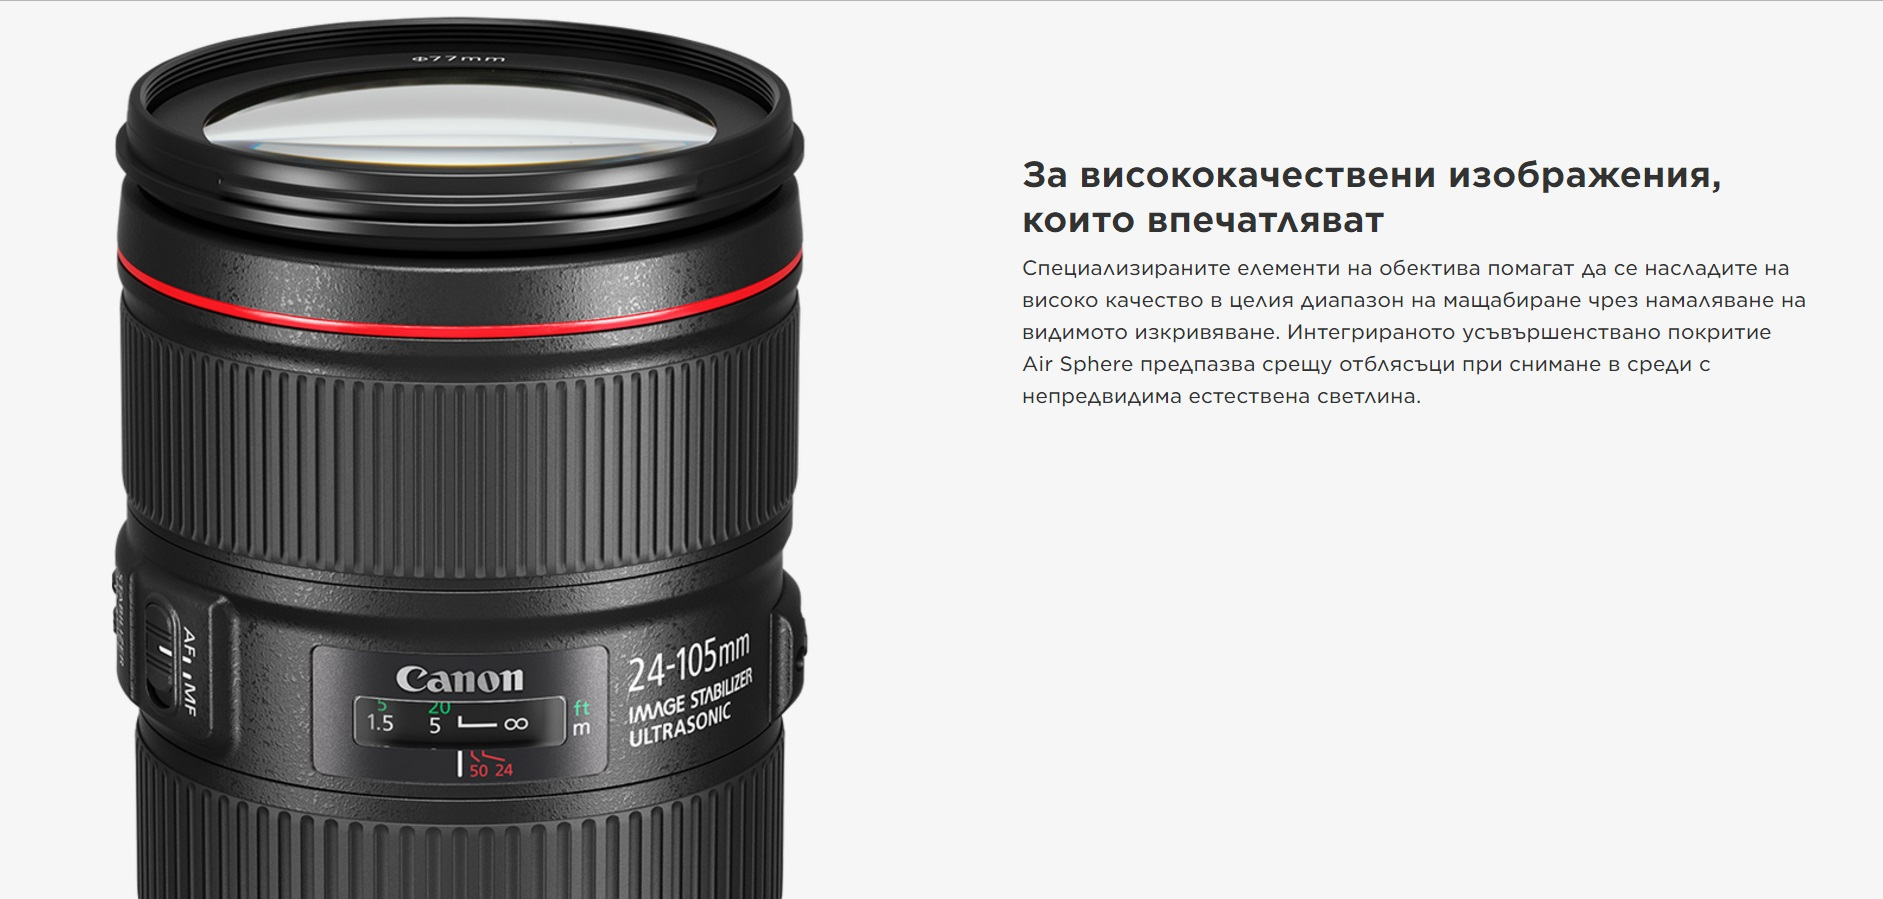 CANON EF 24-105MM F/4L IS USM II